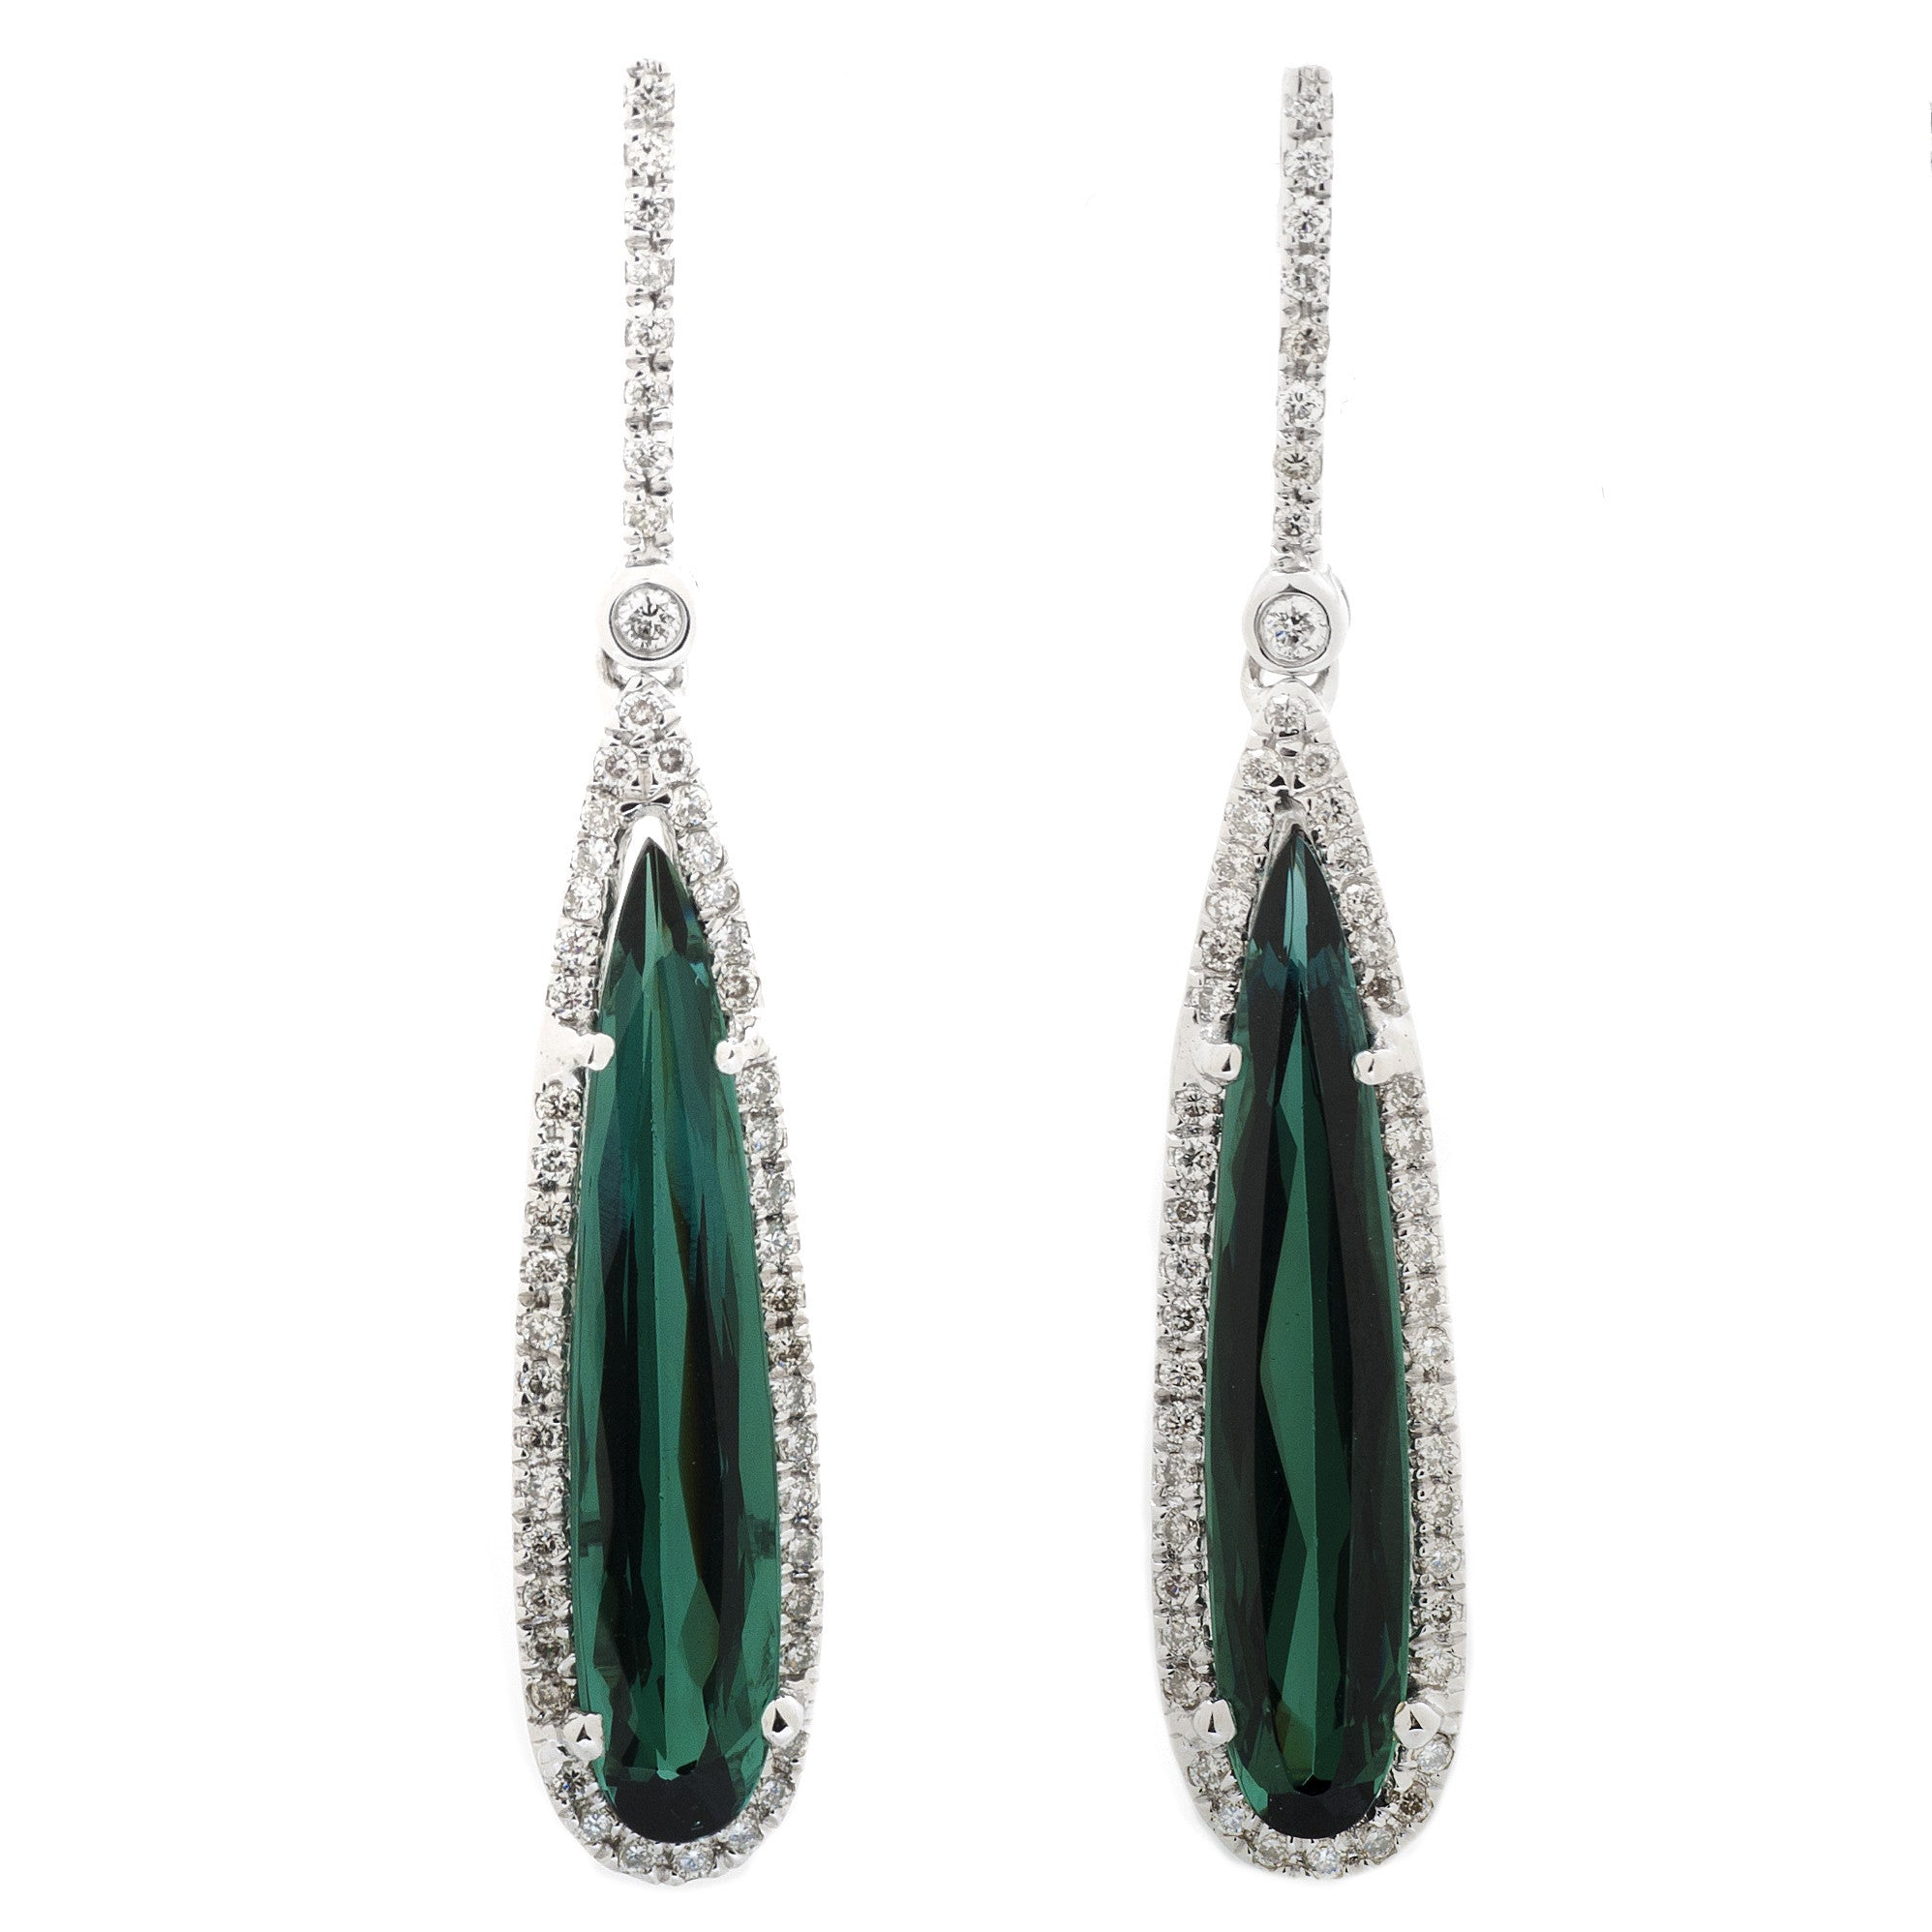 Green Tourmaline Pear Droplet Earrings with Diamond Halo